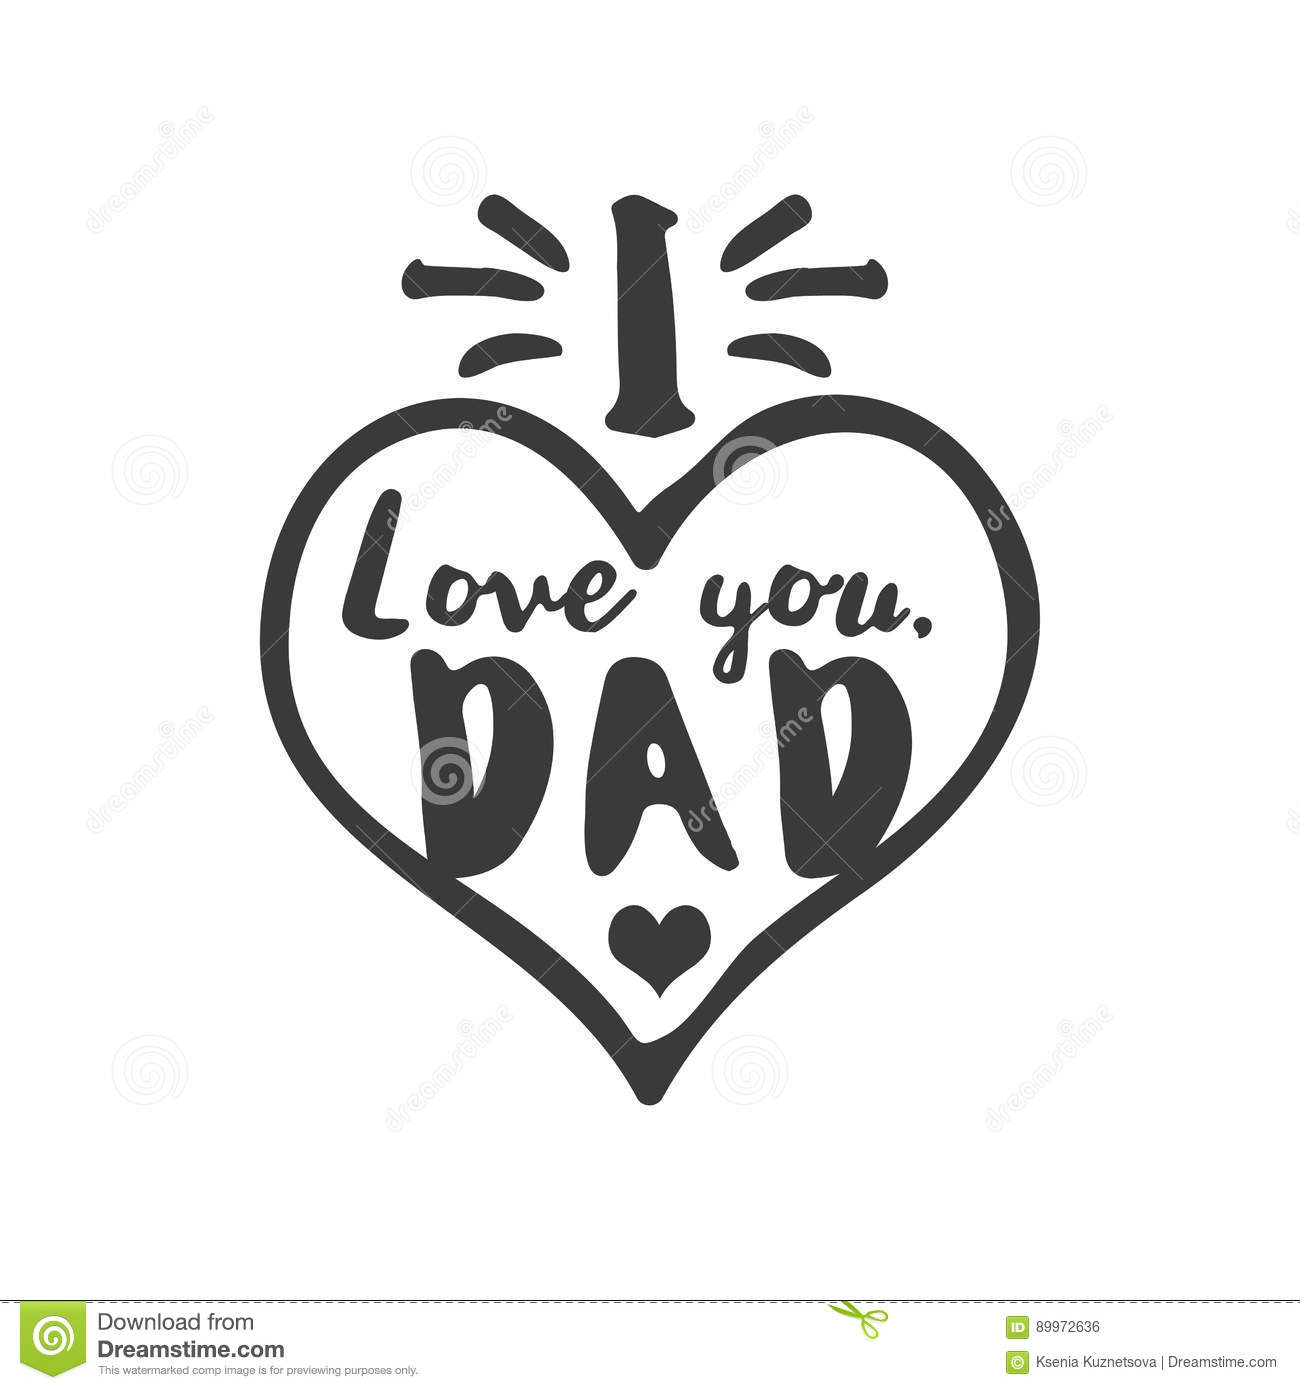 Ever cartoons illustrations vector stock images 1544 - I love you daddy download ...